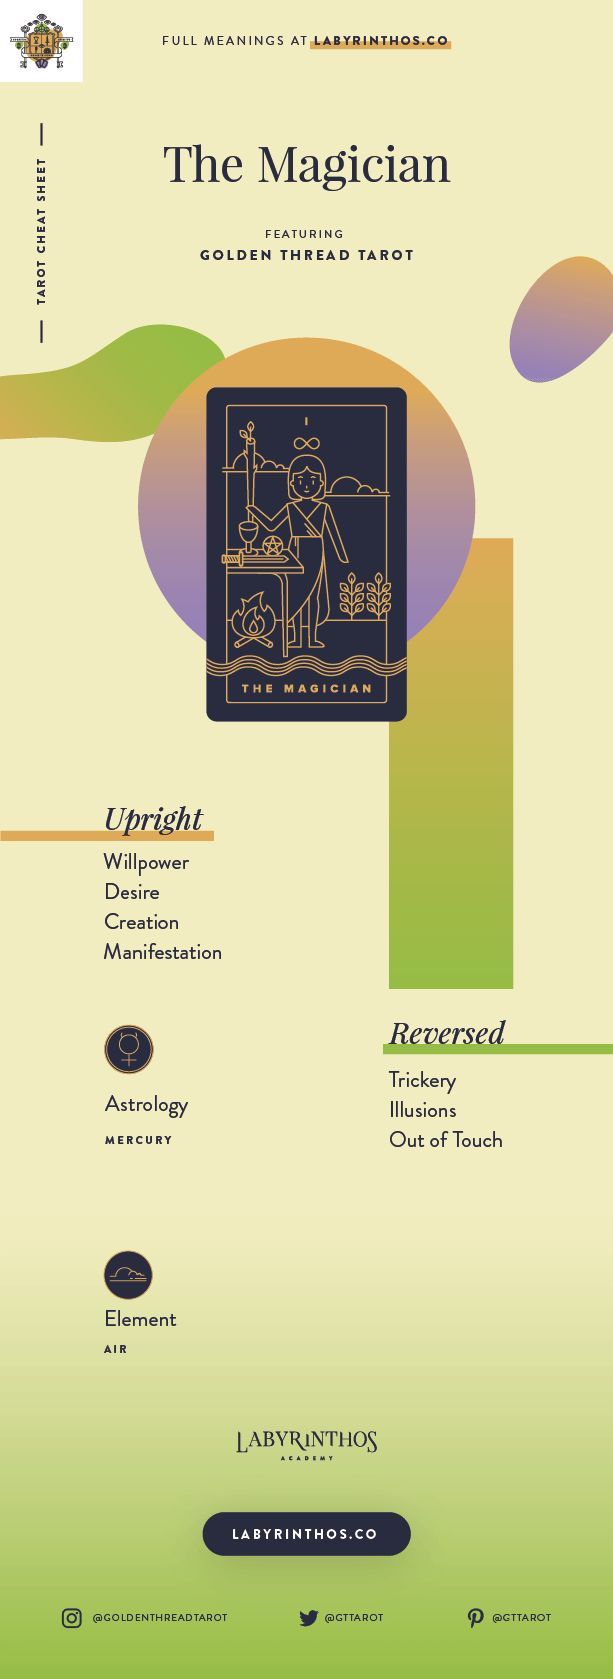 The Magician Meaning - Tarot Card Meanings Cheat Sheet. Art from Golden Thread Tarot.